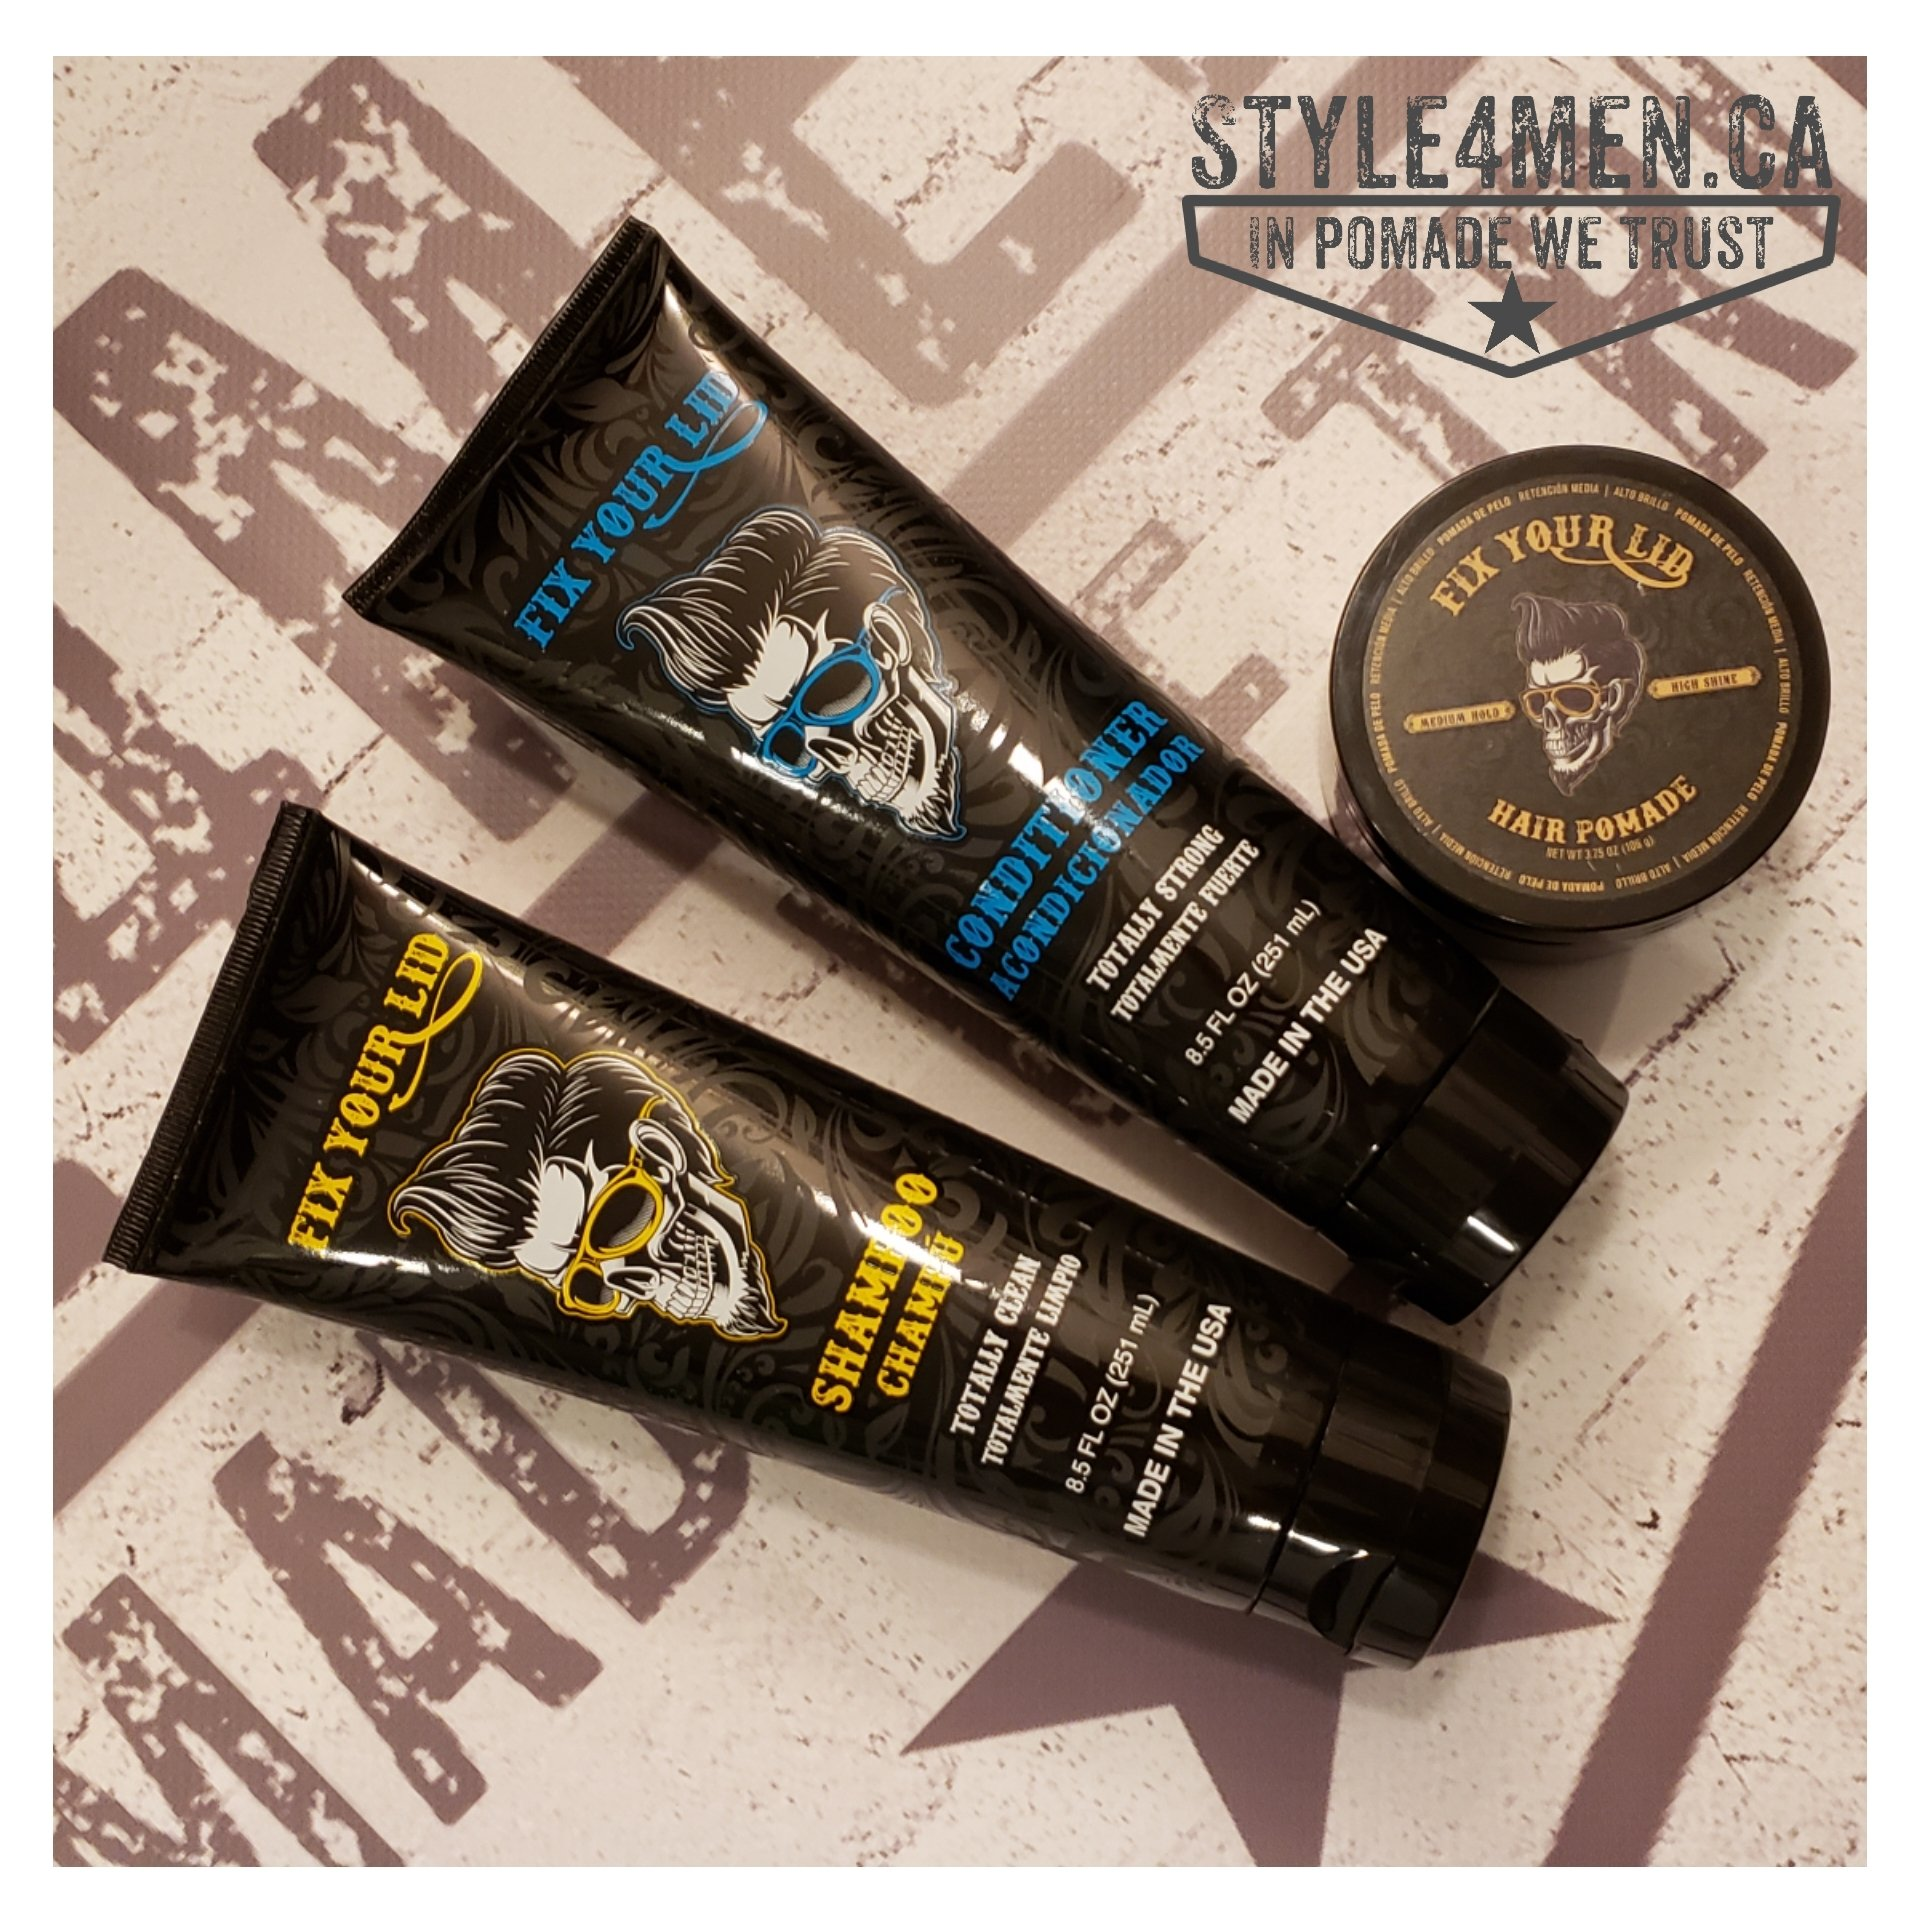 Grooming Gear by FIX YOUR LID